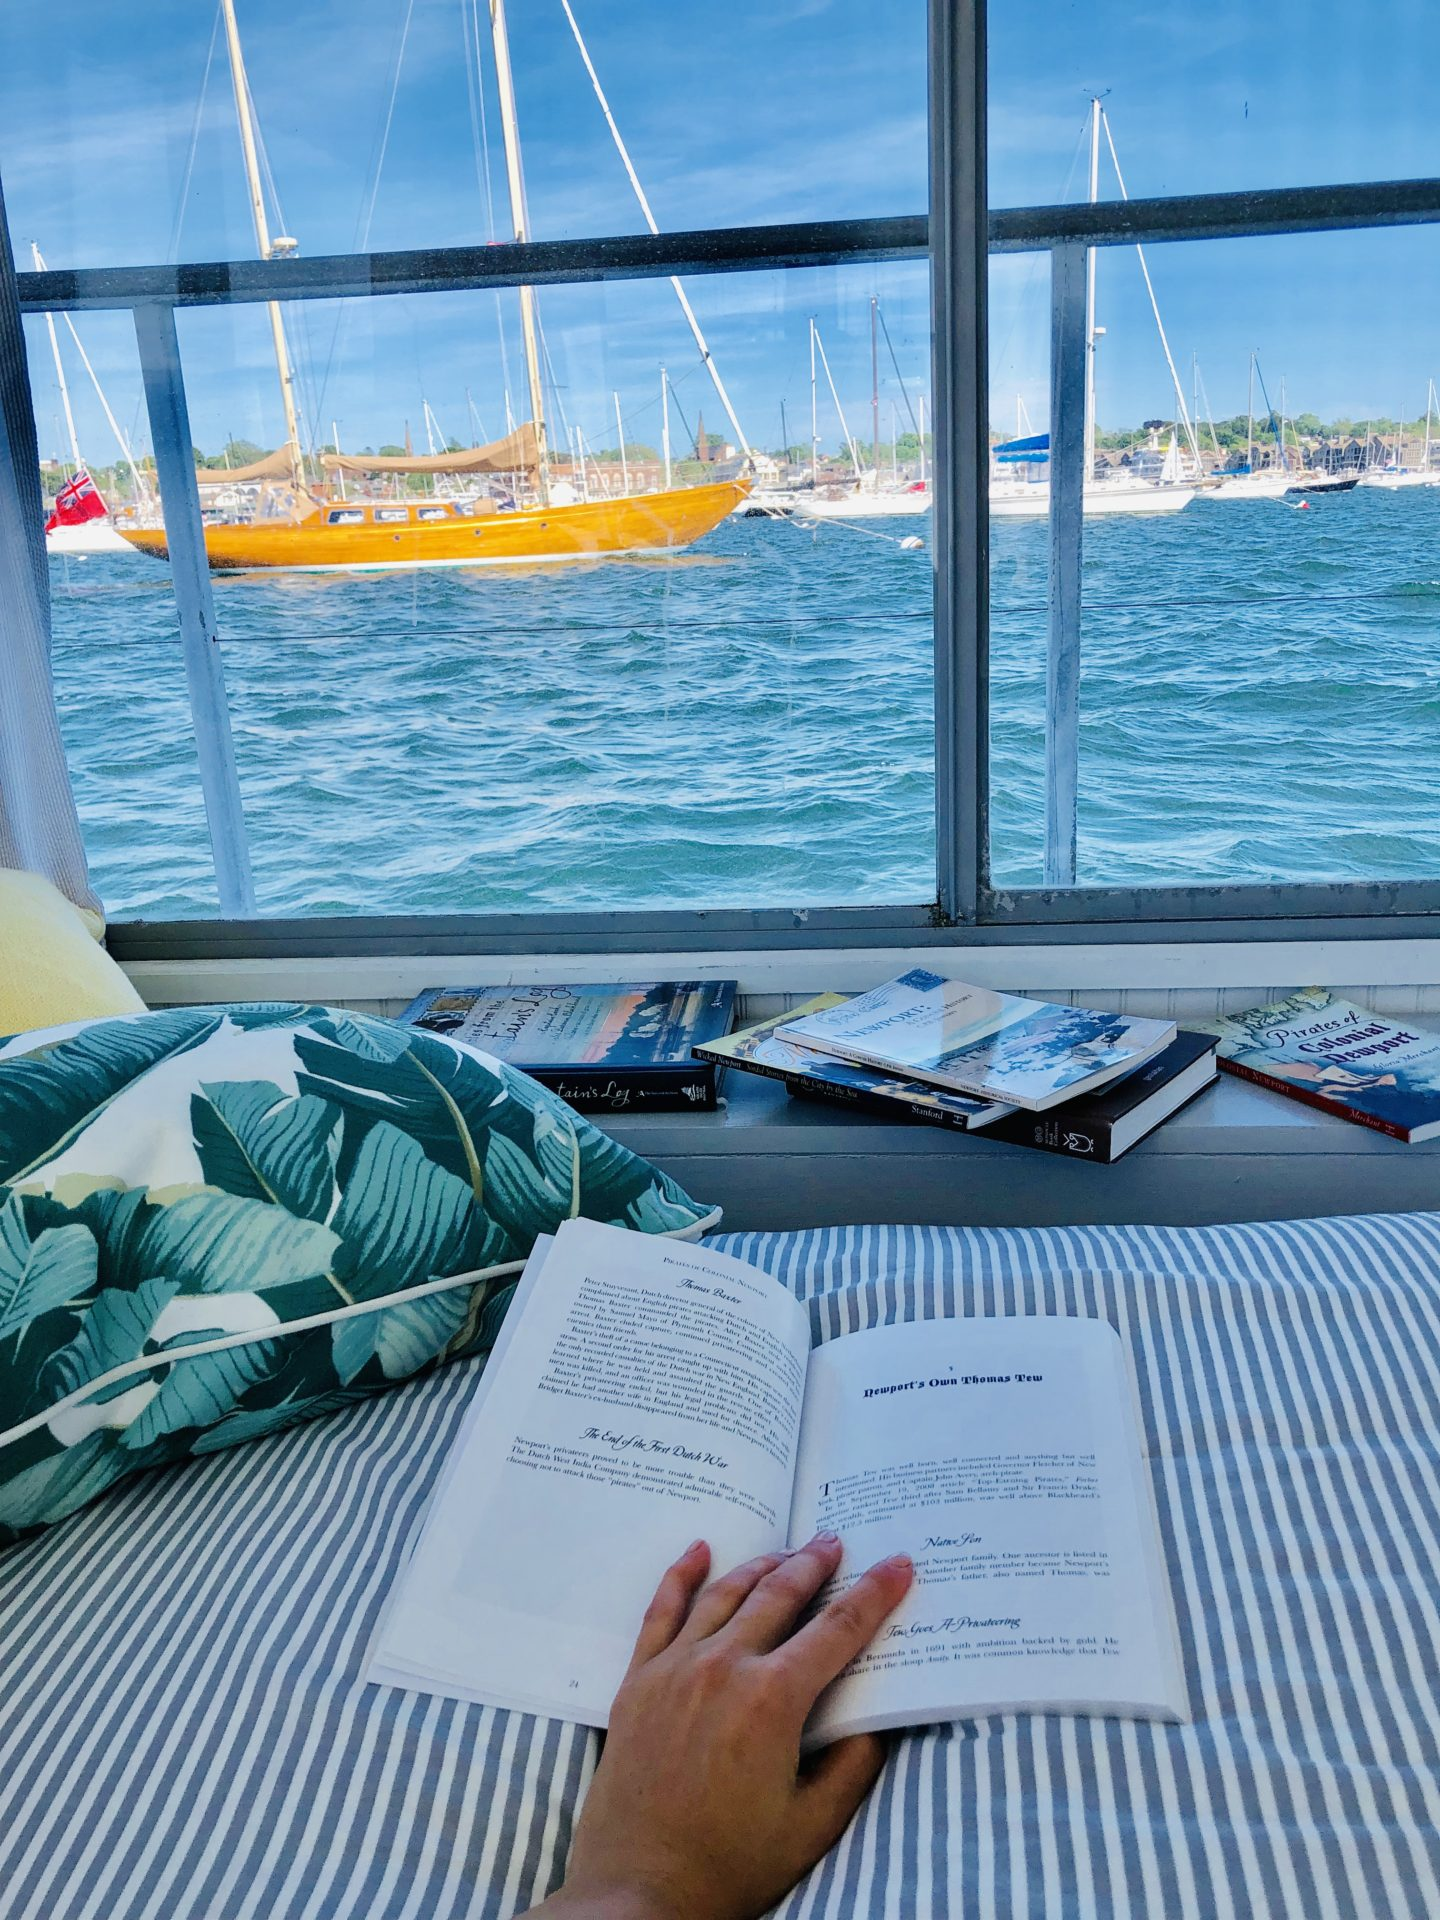 Lifestyle Blogger Chocolate & Lace shares her engagement weekend on the Belafonte in Newport, Rhode Island.